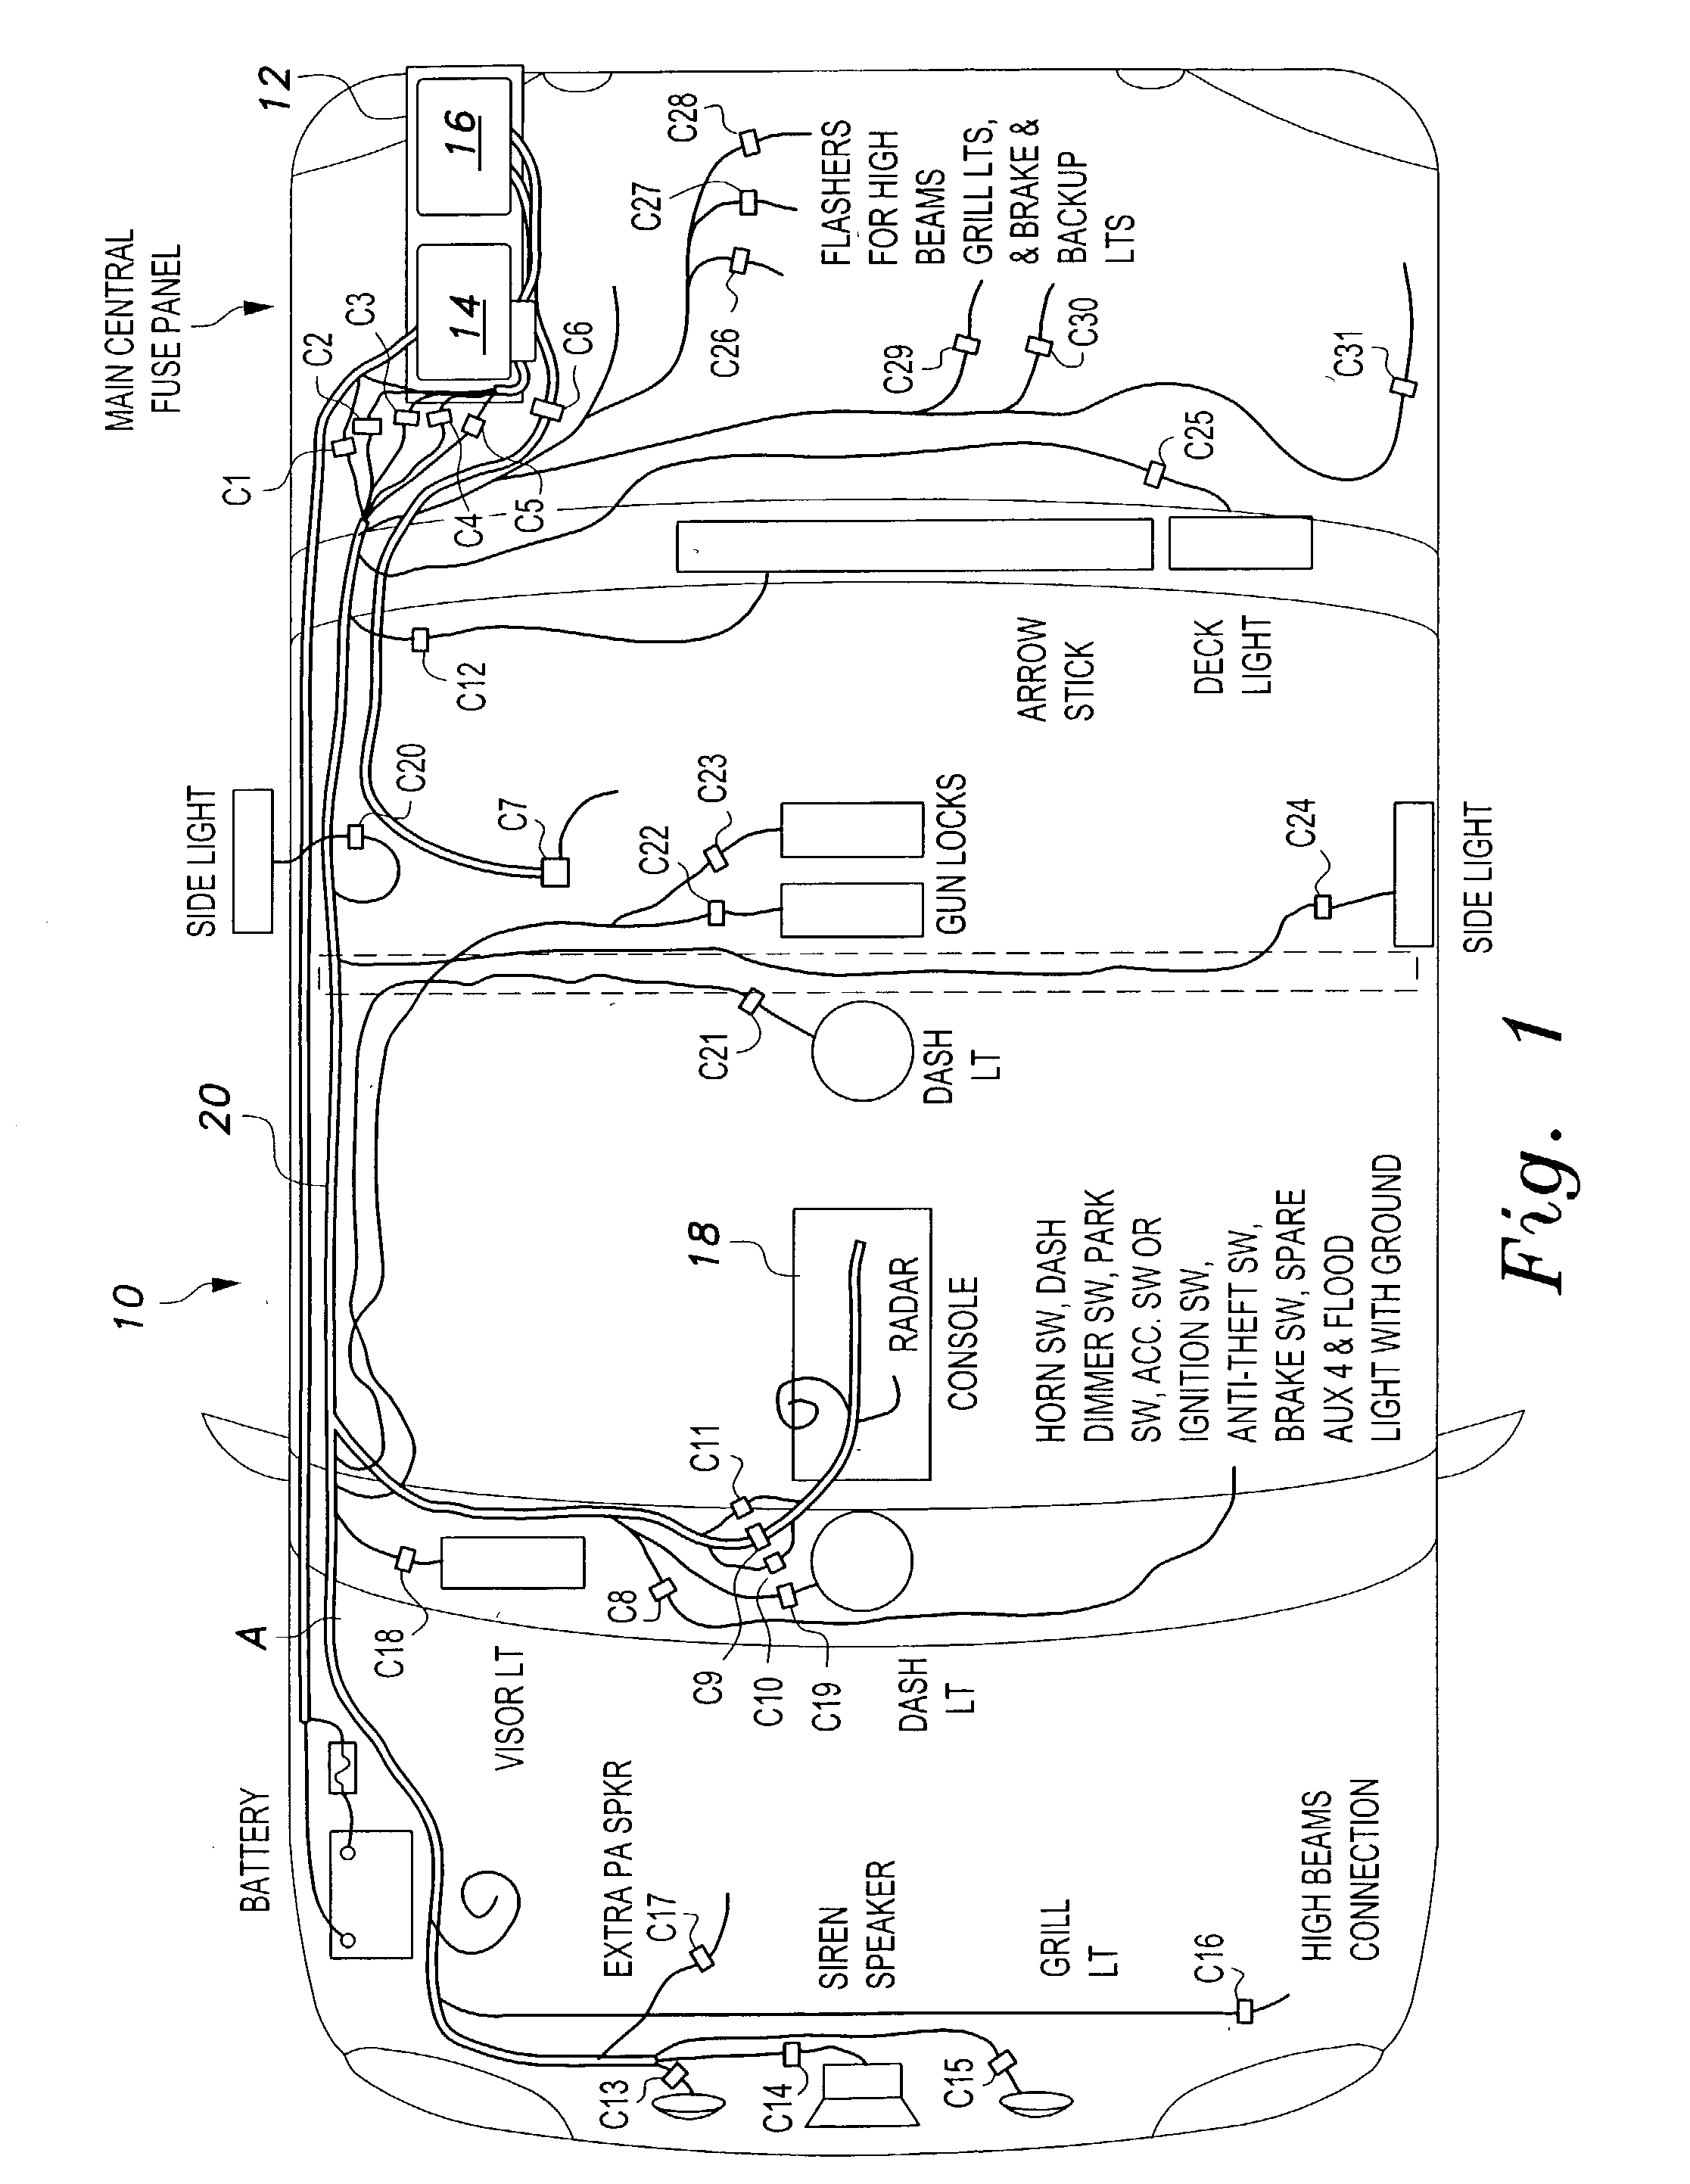 patent us20030090153 - universal fleet electrical system